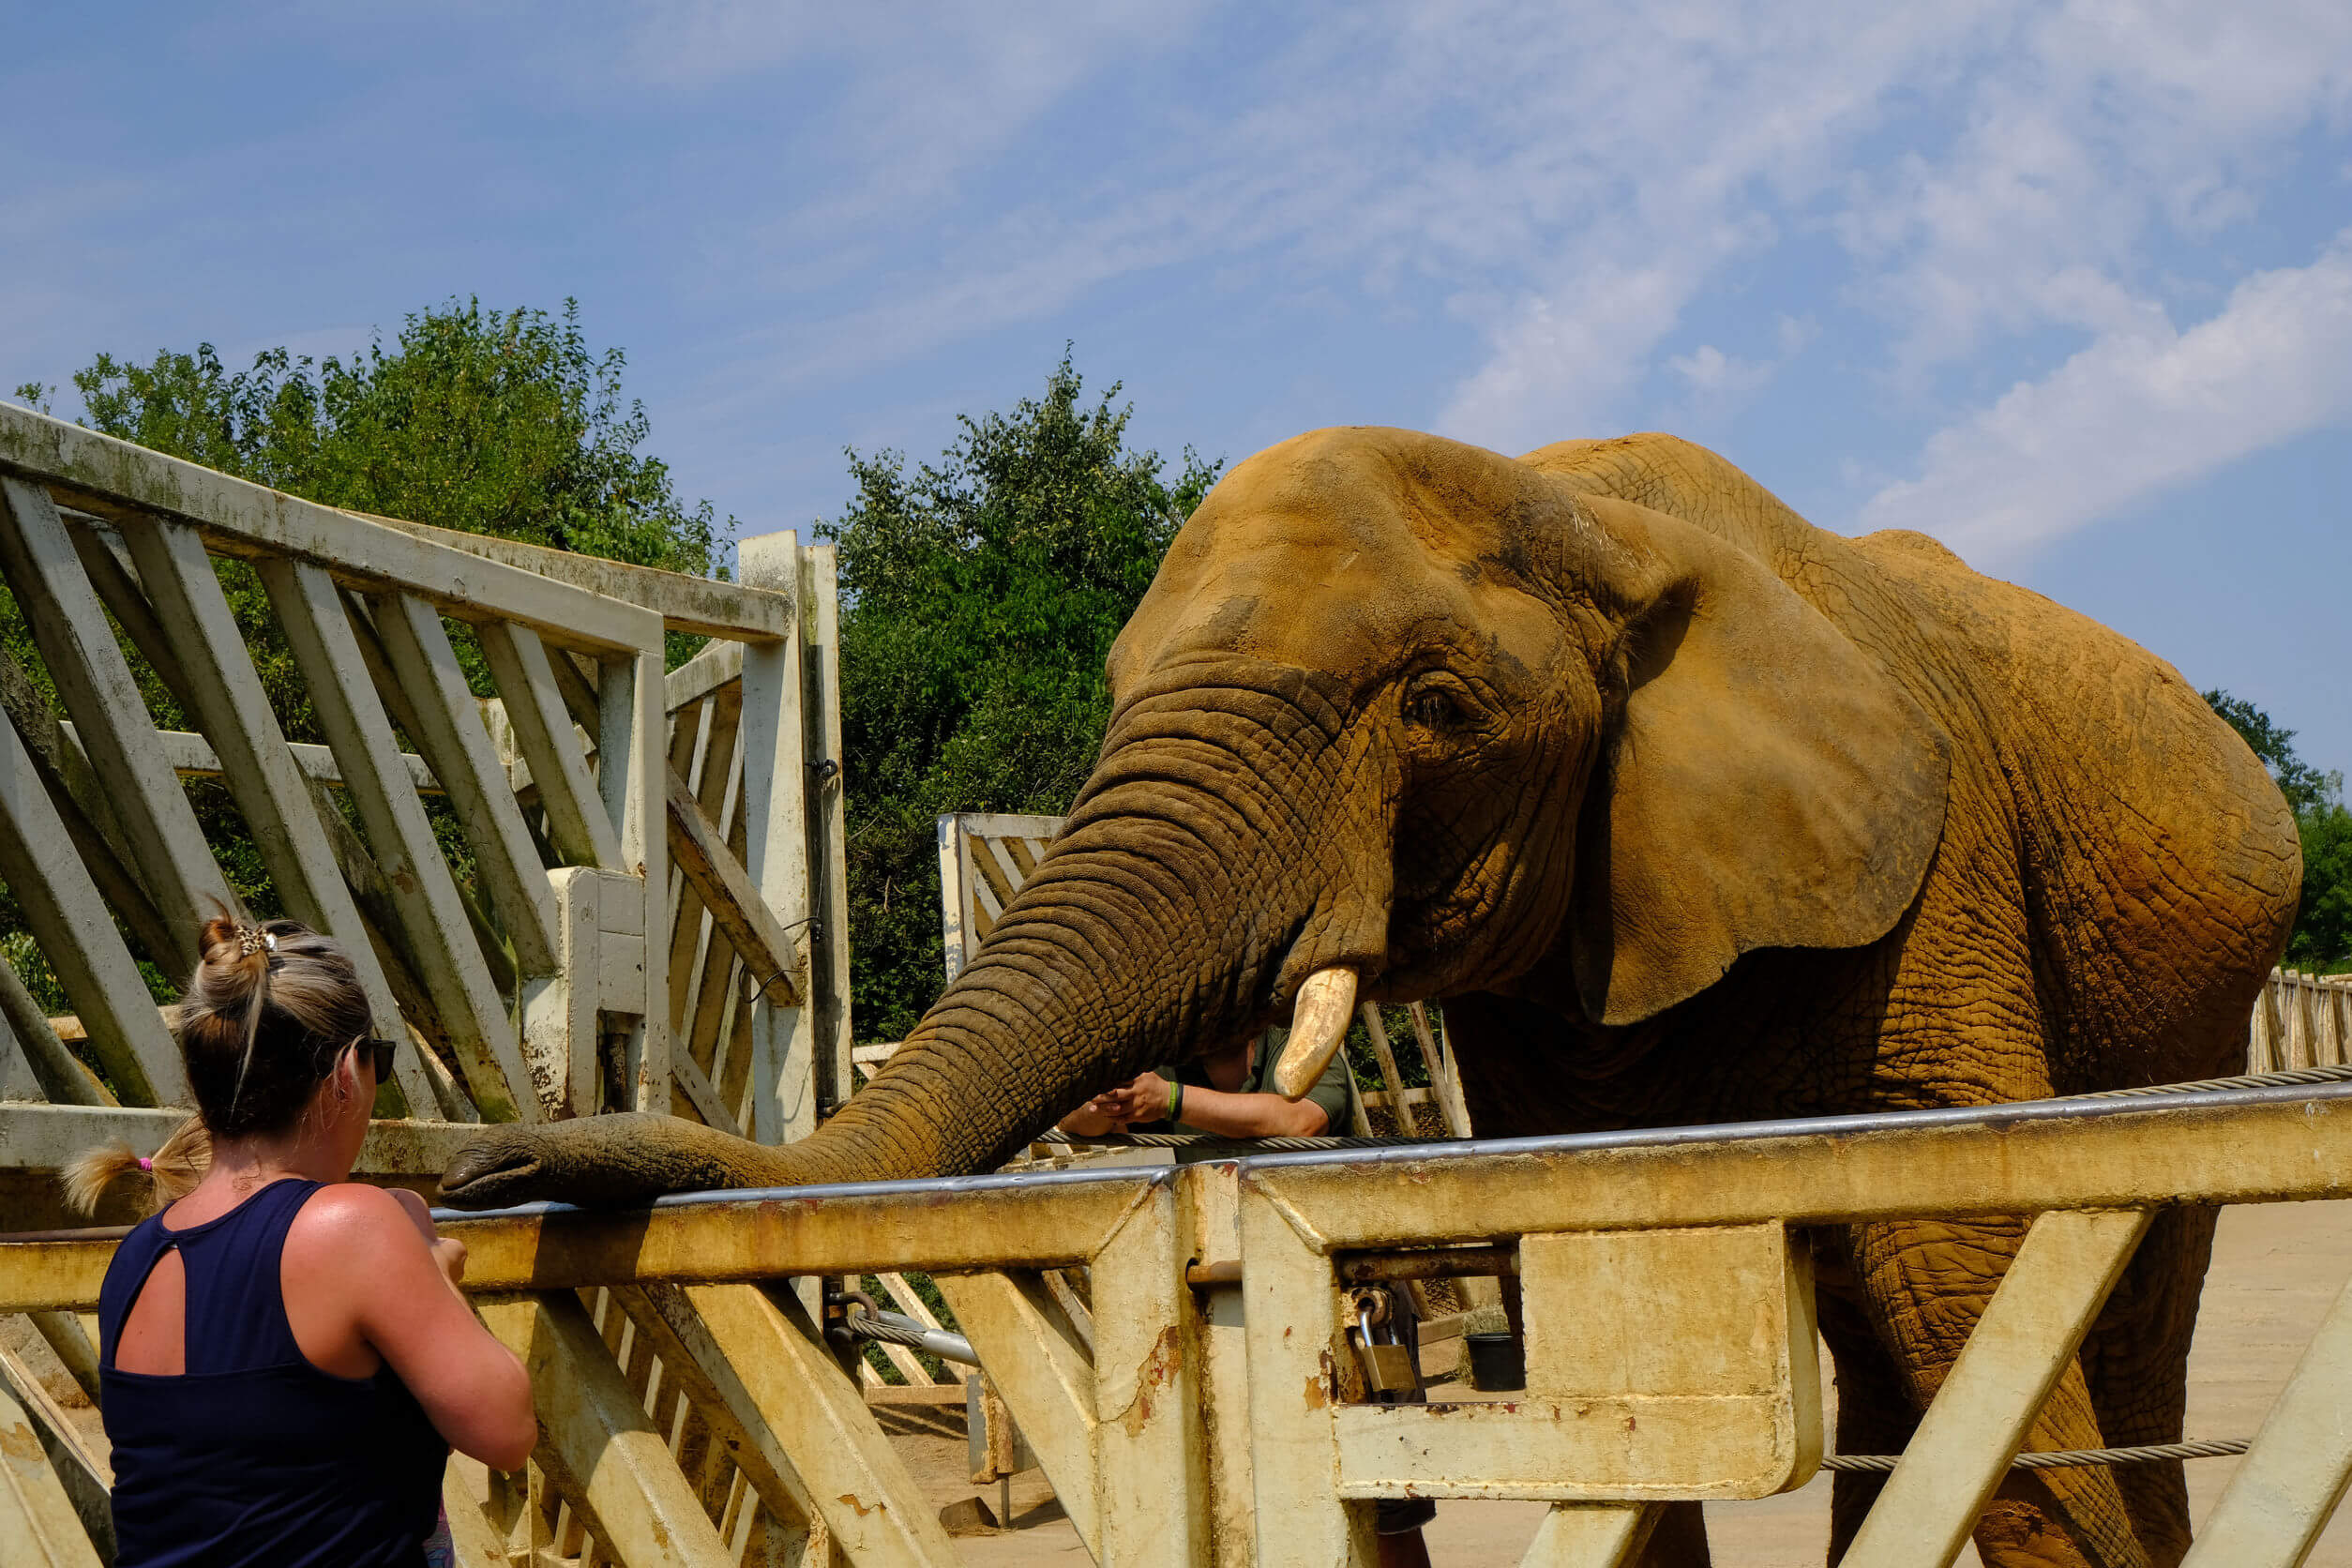 Colchester Zoo, Essex, Uk - July 27, 2018:  Elephant with his trunk resting on railing waiting for feeding time.